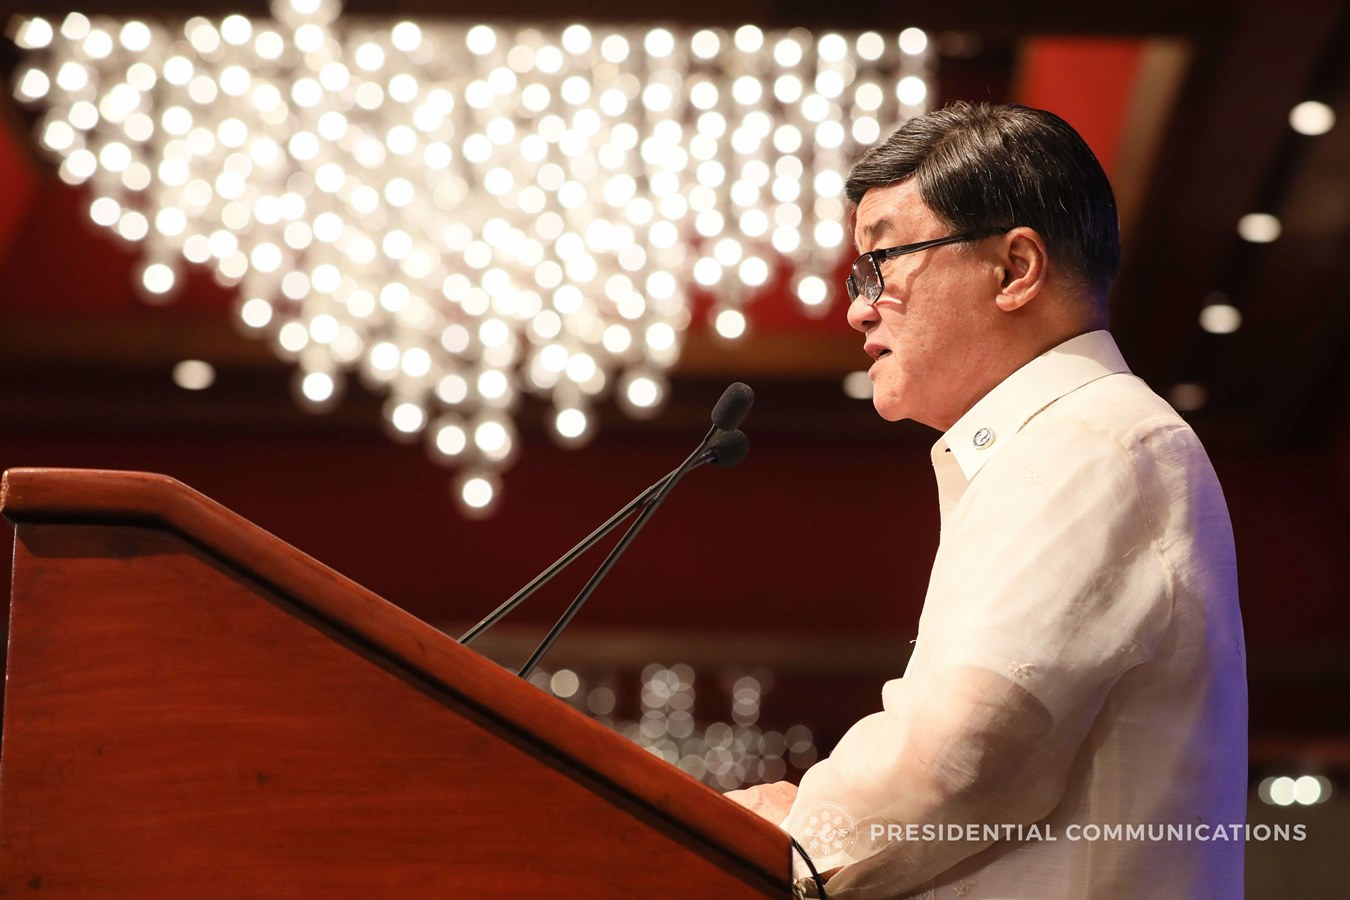 FILE: Justice Secretary Vitaliano Aguirre II issued Department Order No. 763, ordering the NBI to investigate and build a case over the alleged danger to public health, surfacing from the vaccination program carried out by the DOH and the manufacturer of 'Dengvaxia', Sanofi Pasteur. (ACE MORANDANTE/PRESIDENTIAL PHOTO)